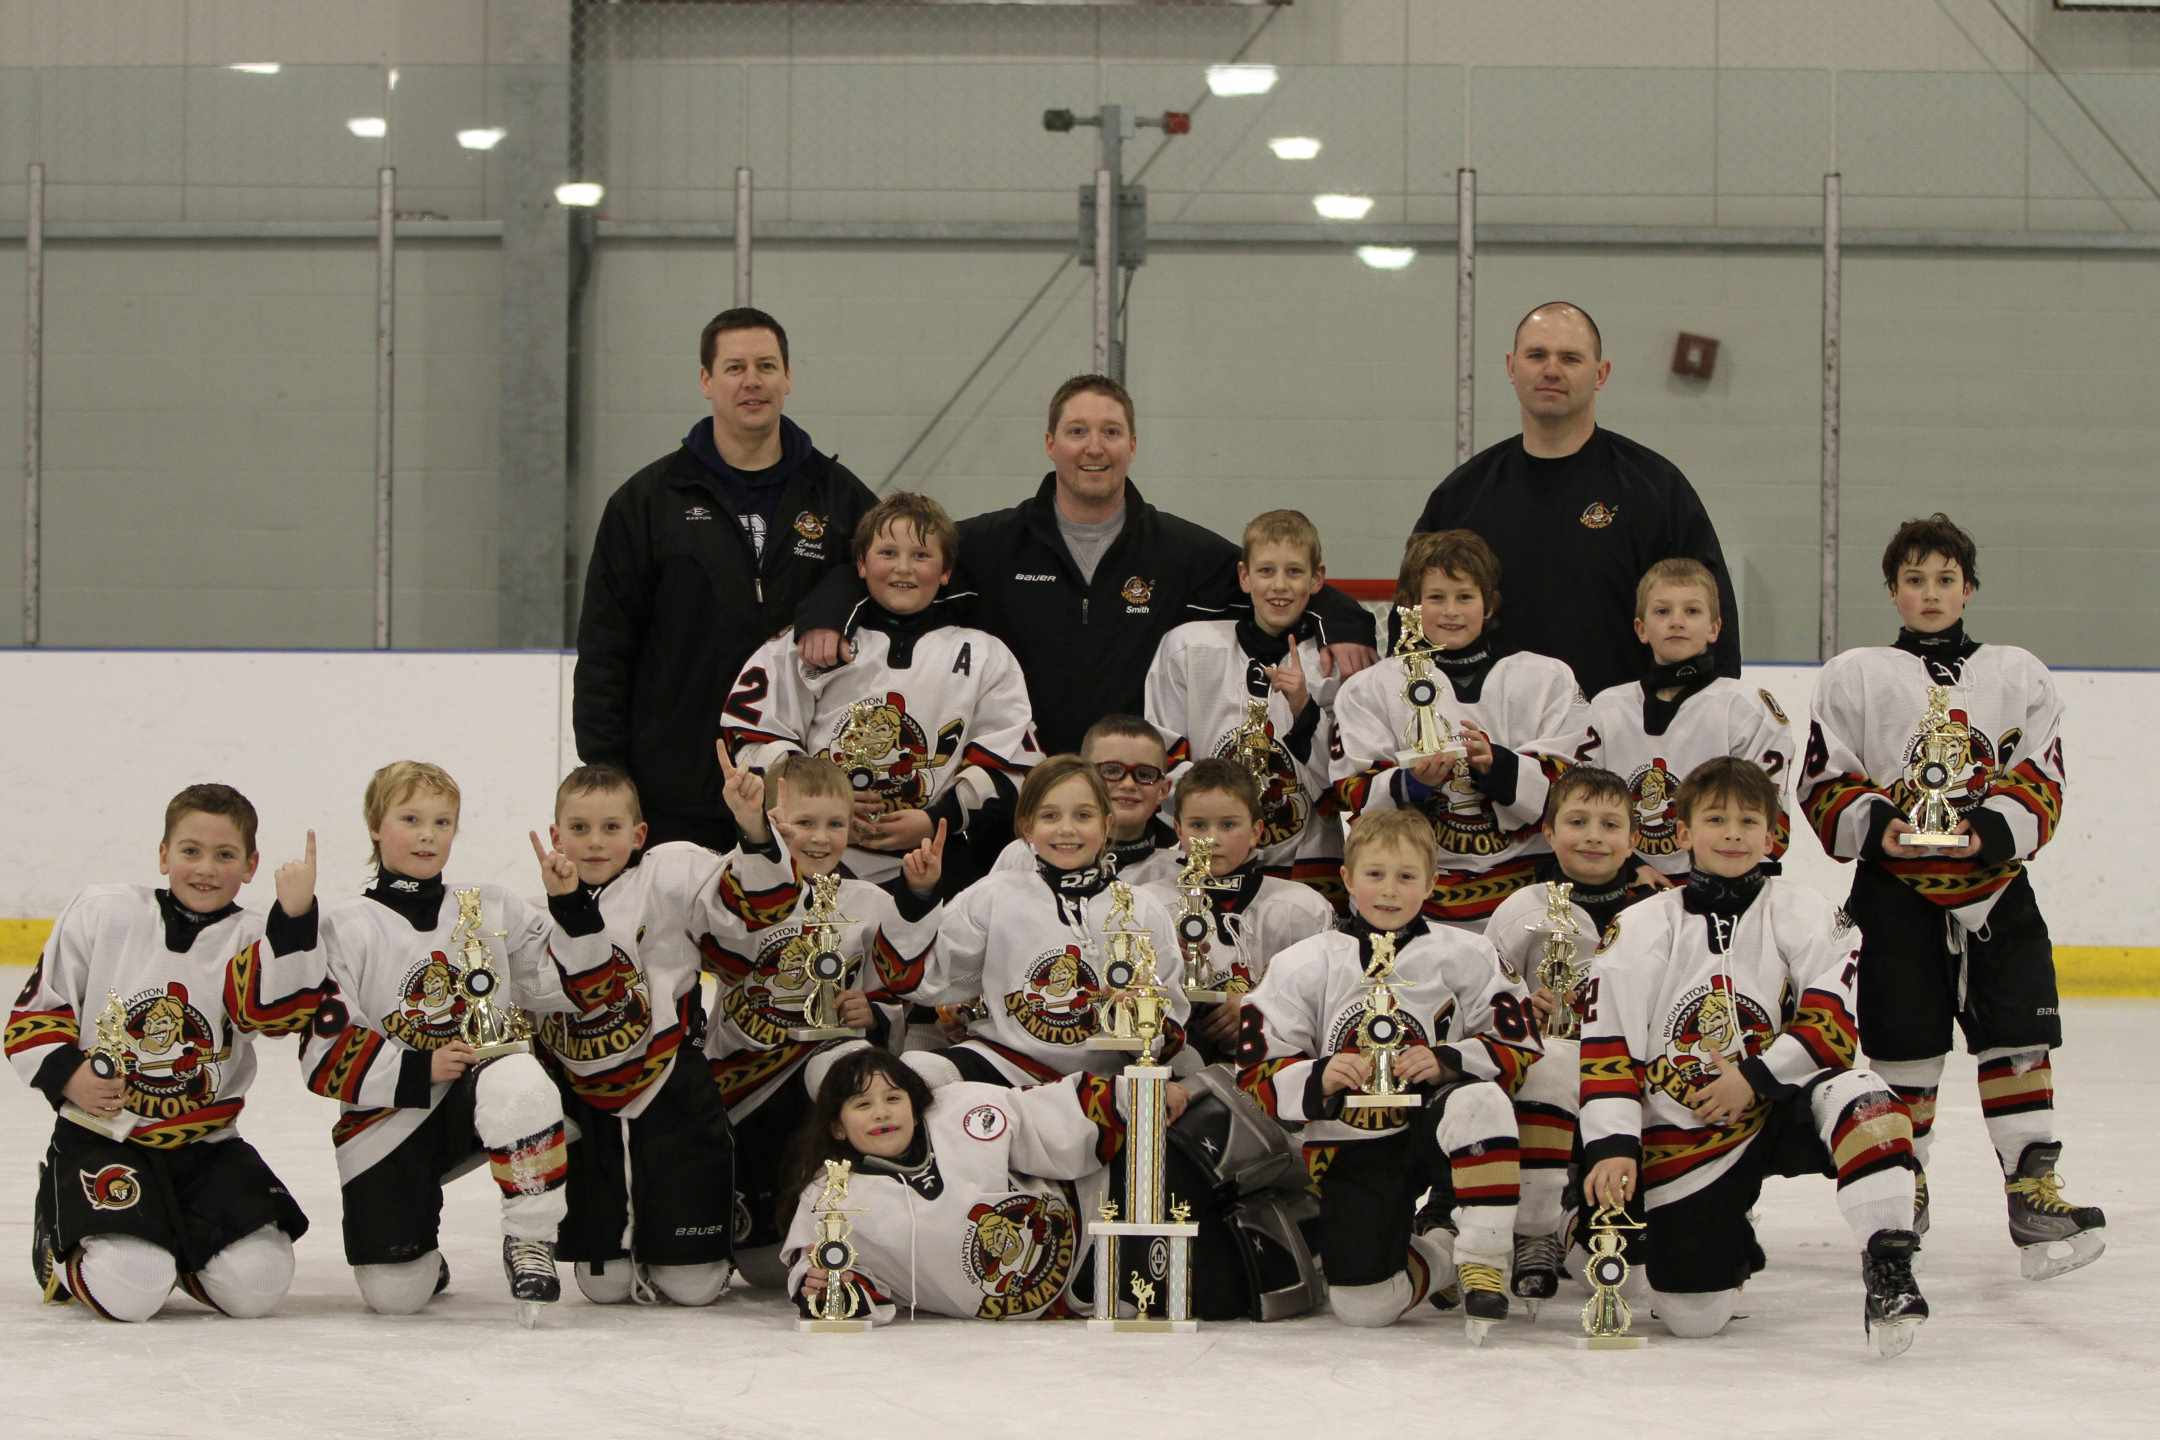 trophy case the binghamton jr senators mite a team won the mite a division of the skaneateles mite madness tour nt 4 6 2011